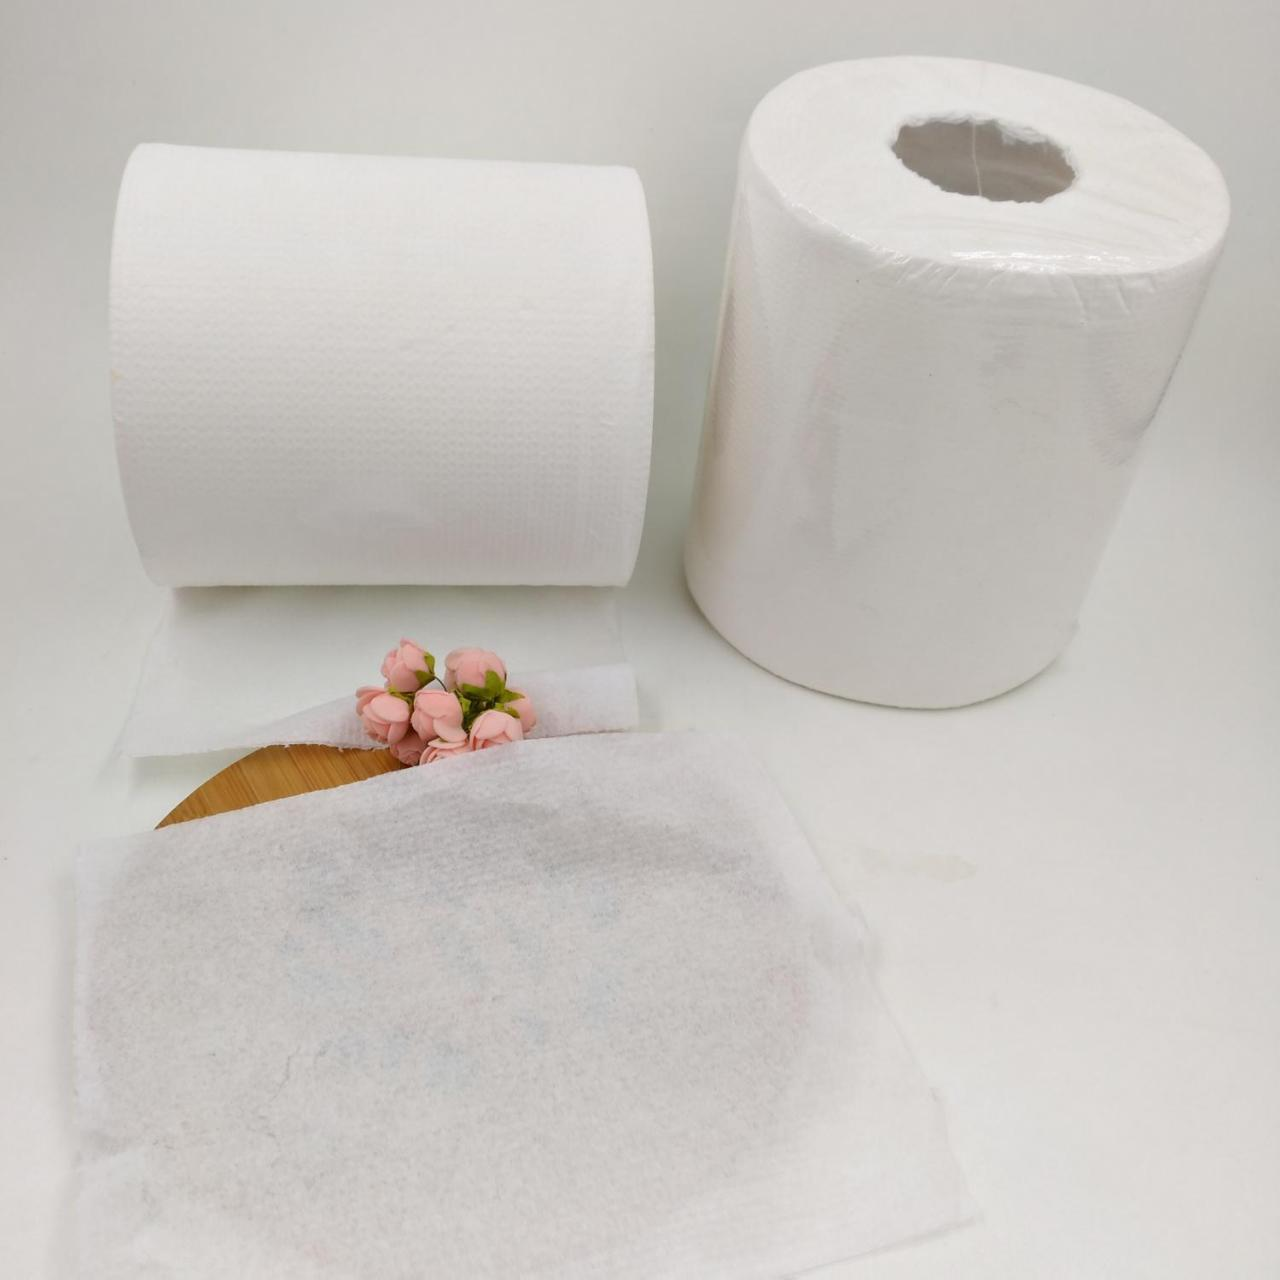 China 2019 Hot sale Quality customized disposable Hand paper towel roll on sale